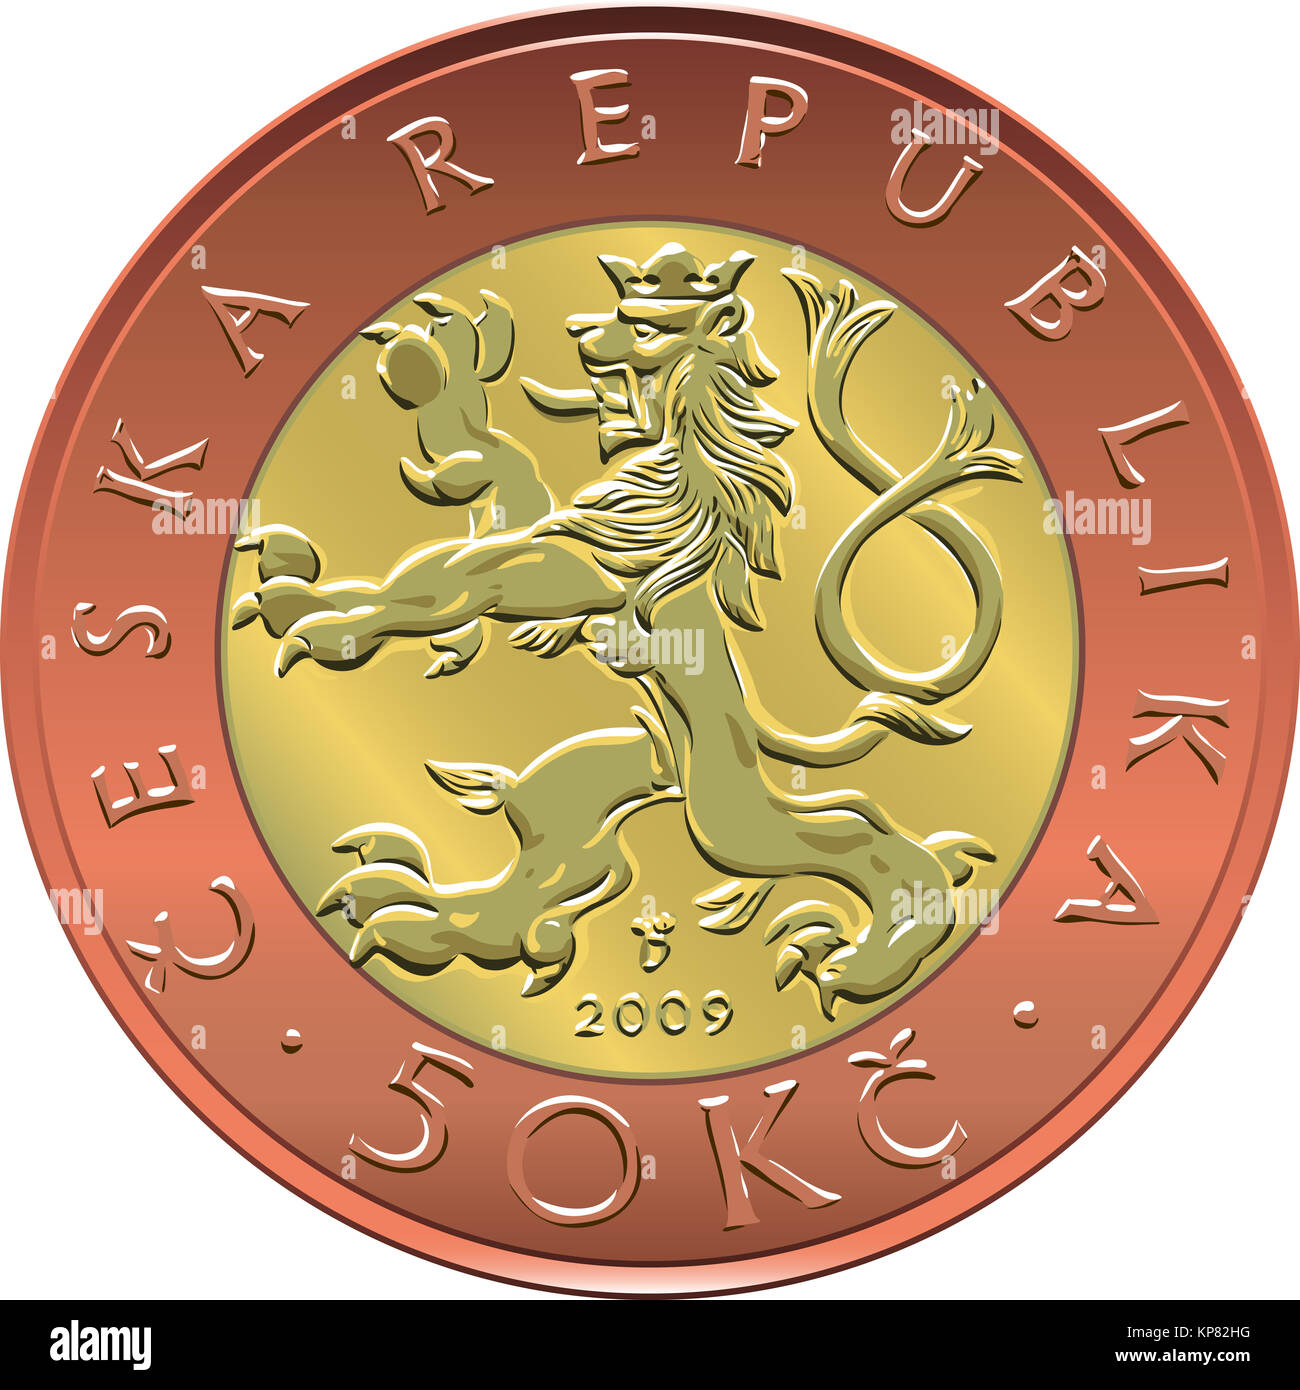 Gold Plated Coin Stock Photos & Gold Plated Coin Stock